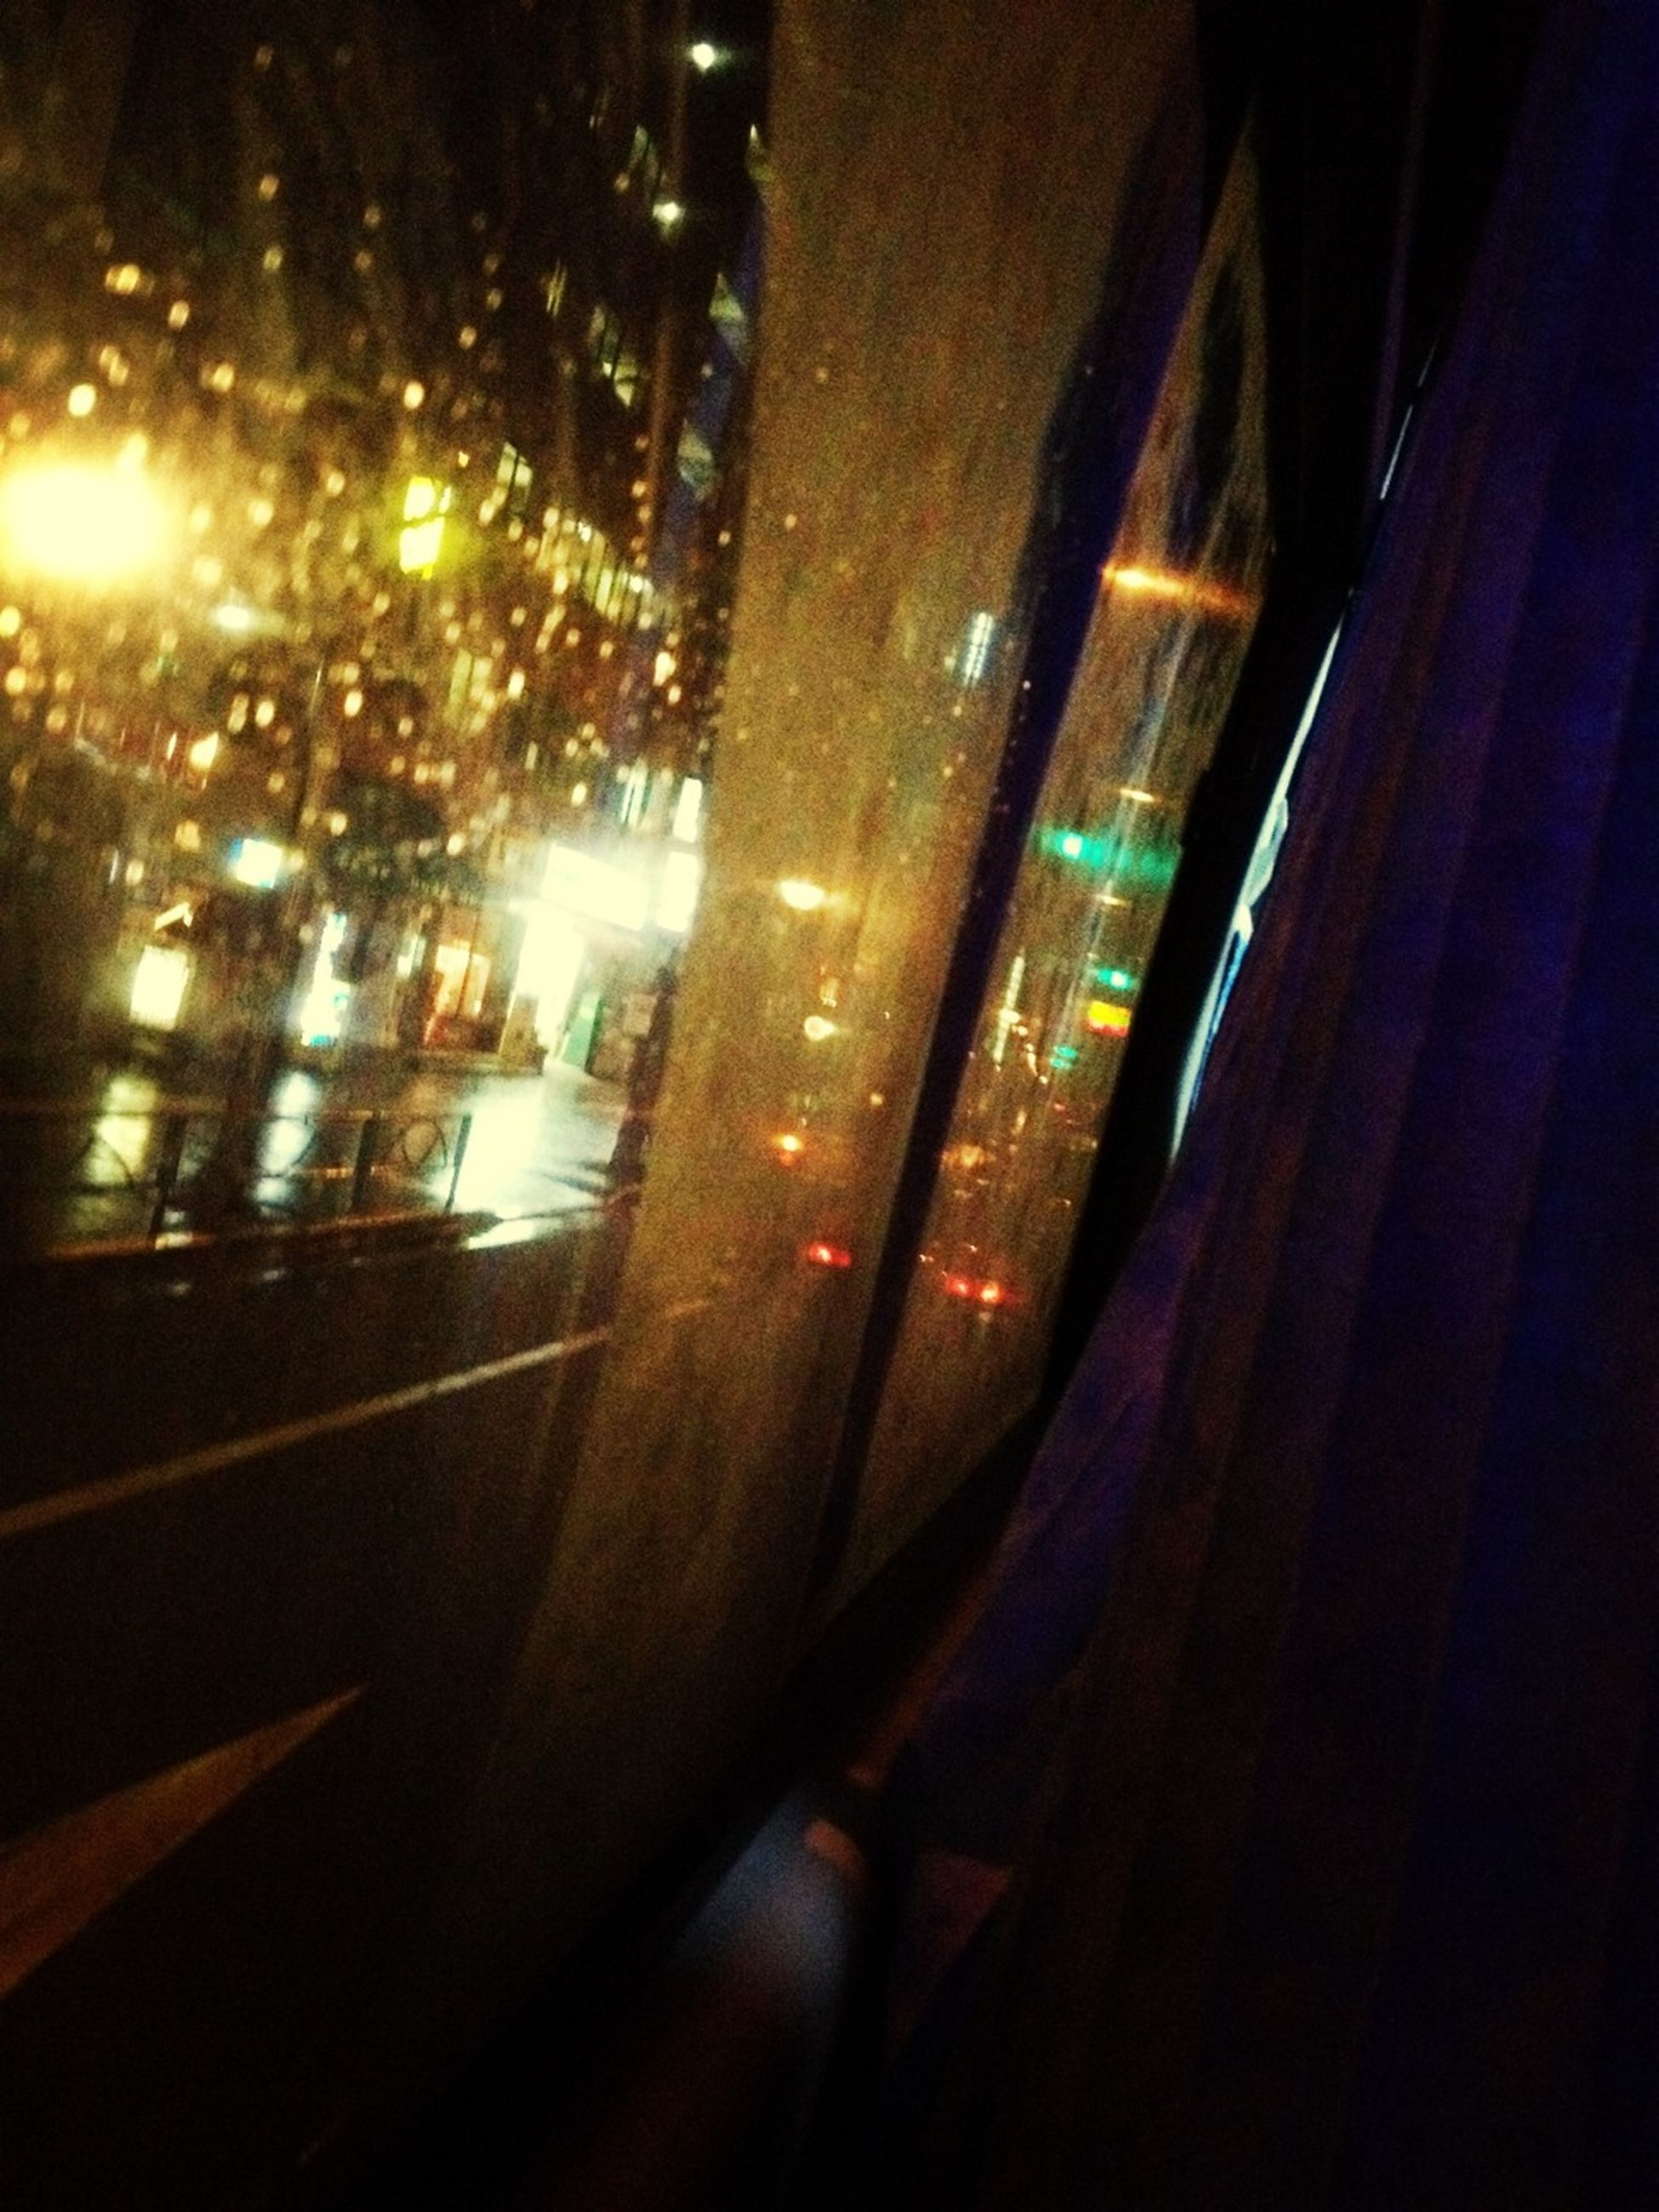 transportation, mode of transport, illuminated, land vehicle, car, night, glass - material, on the move, vehicle interior, transparent, travel, road, window, public transportation, windshield, motion, indoors, speed, blurred motion, car interior